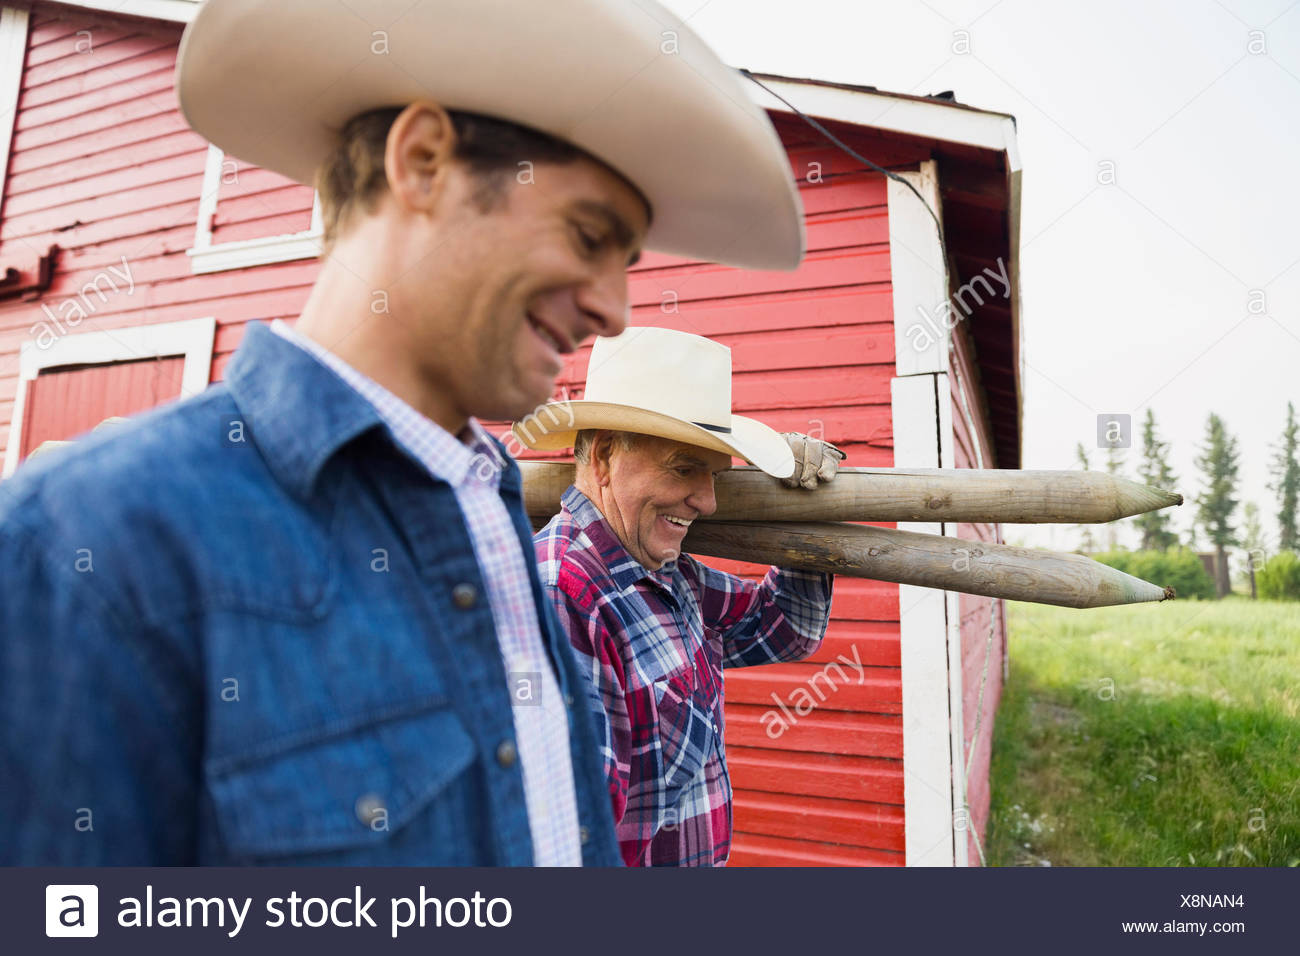 Ranchers carrying fence posts outside barn - Stock Image